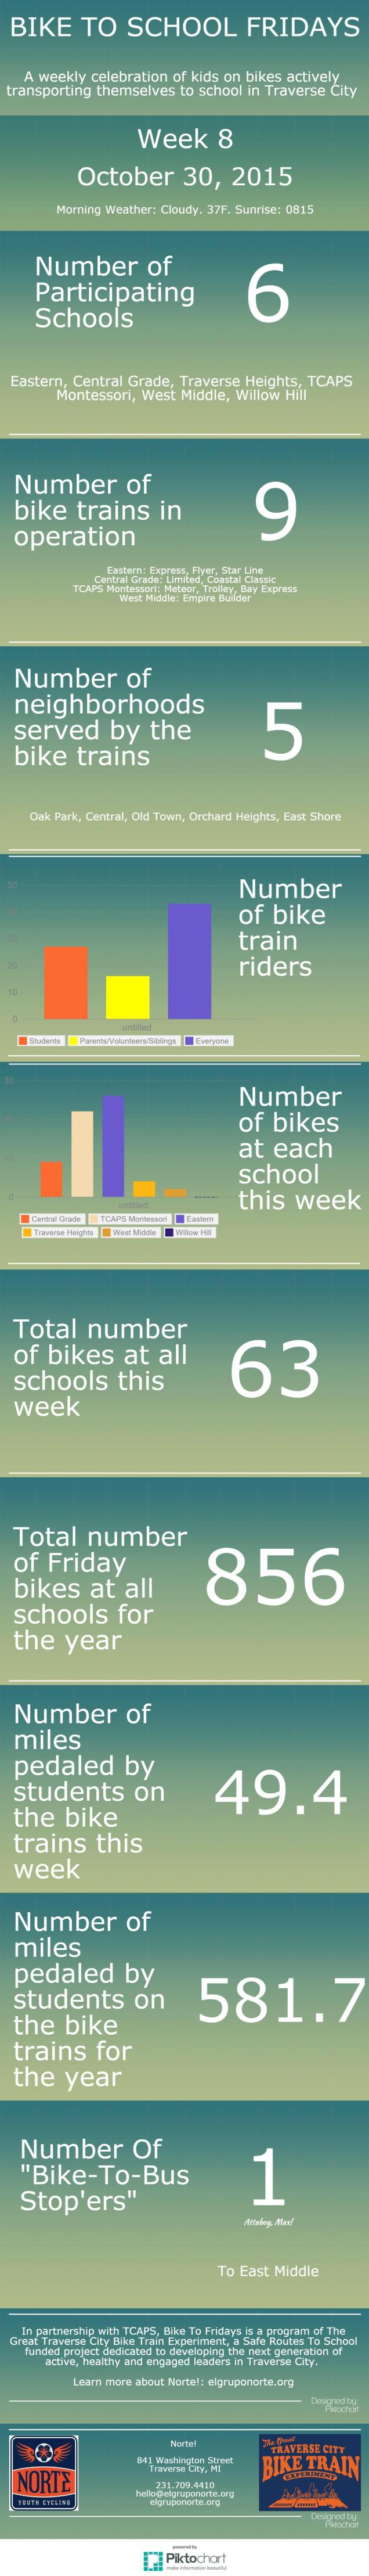 Bike To School Fridays- Week 8